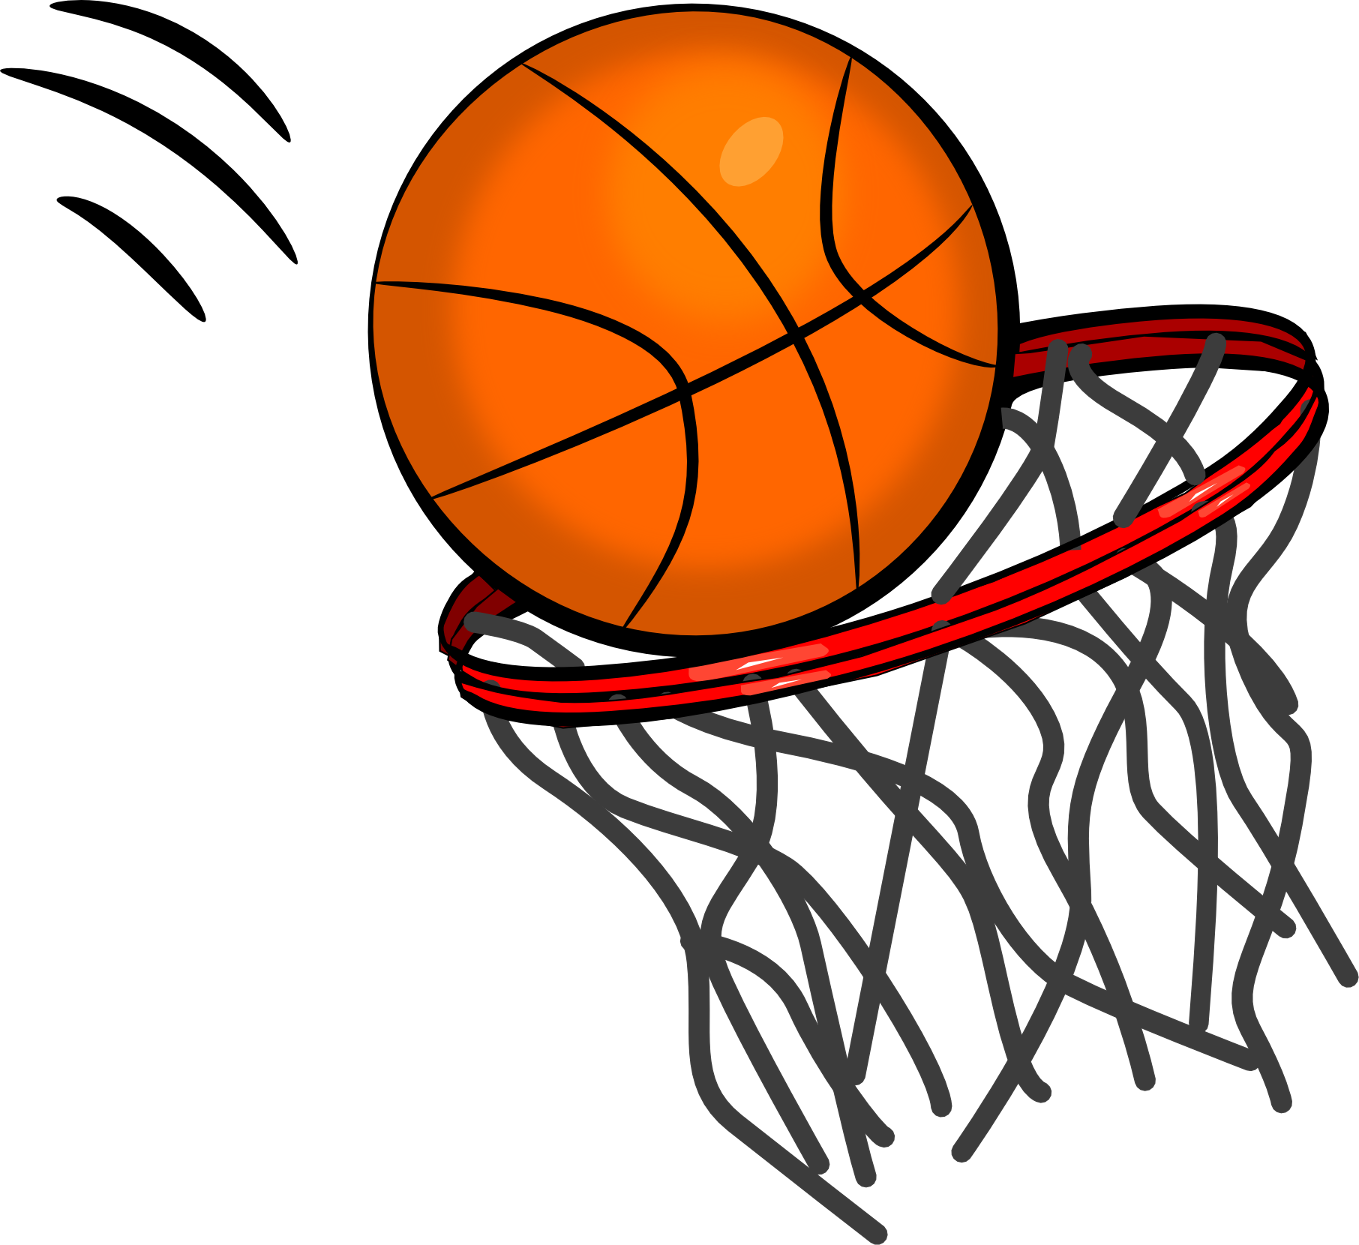 Cartoon Basketball Clipart-Cartoon Basketball Clipart-14